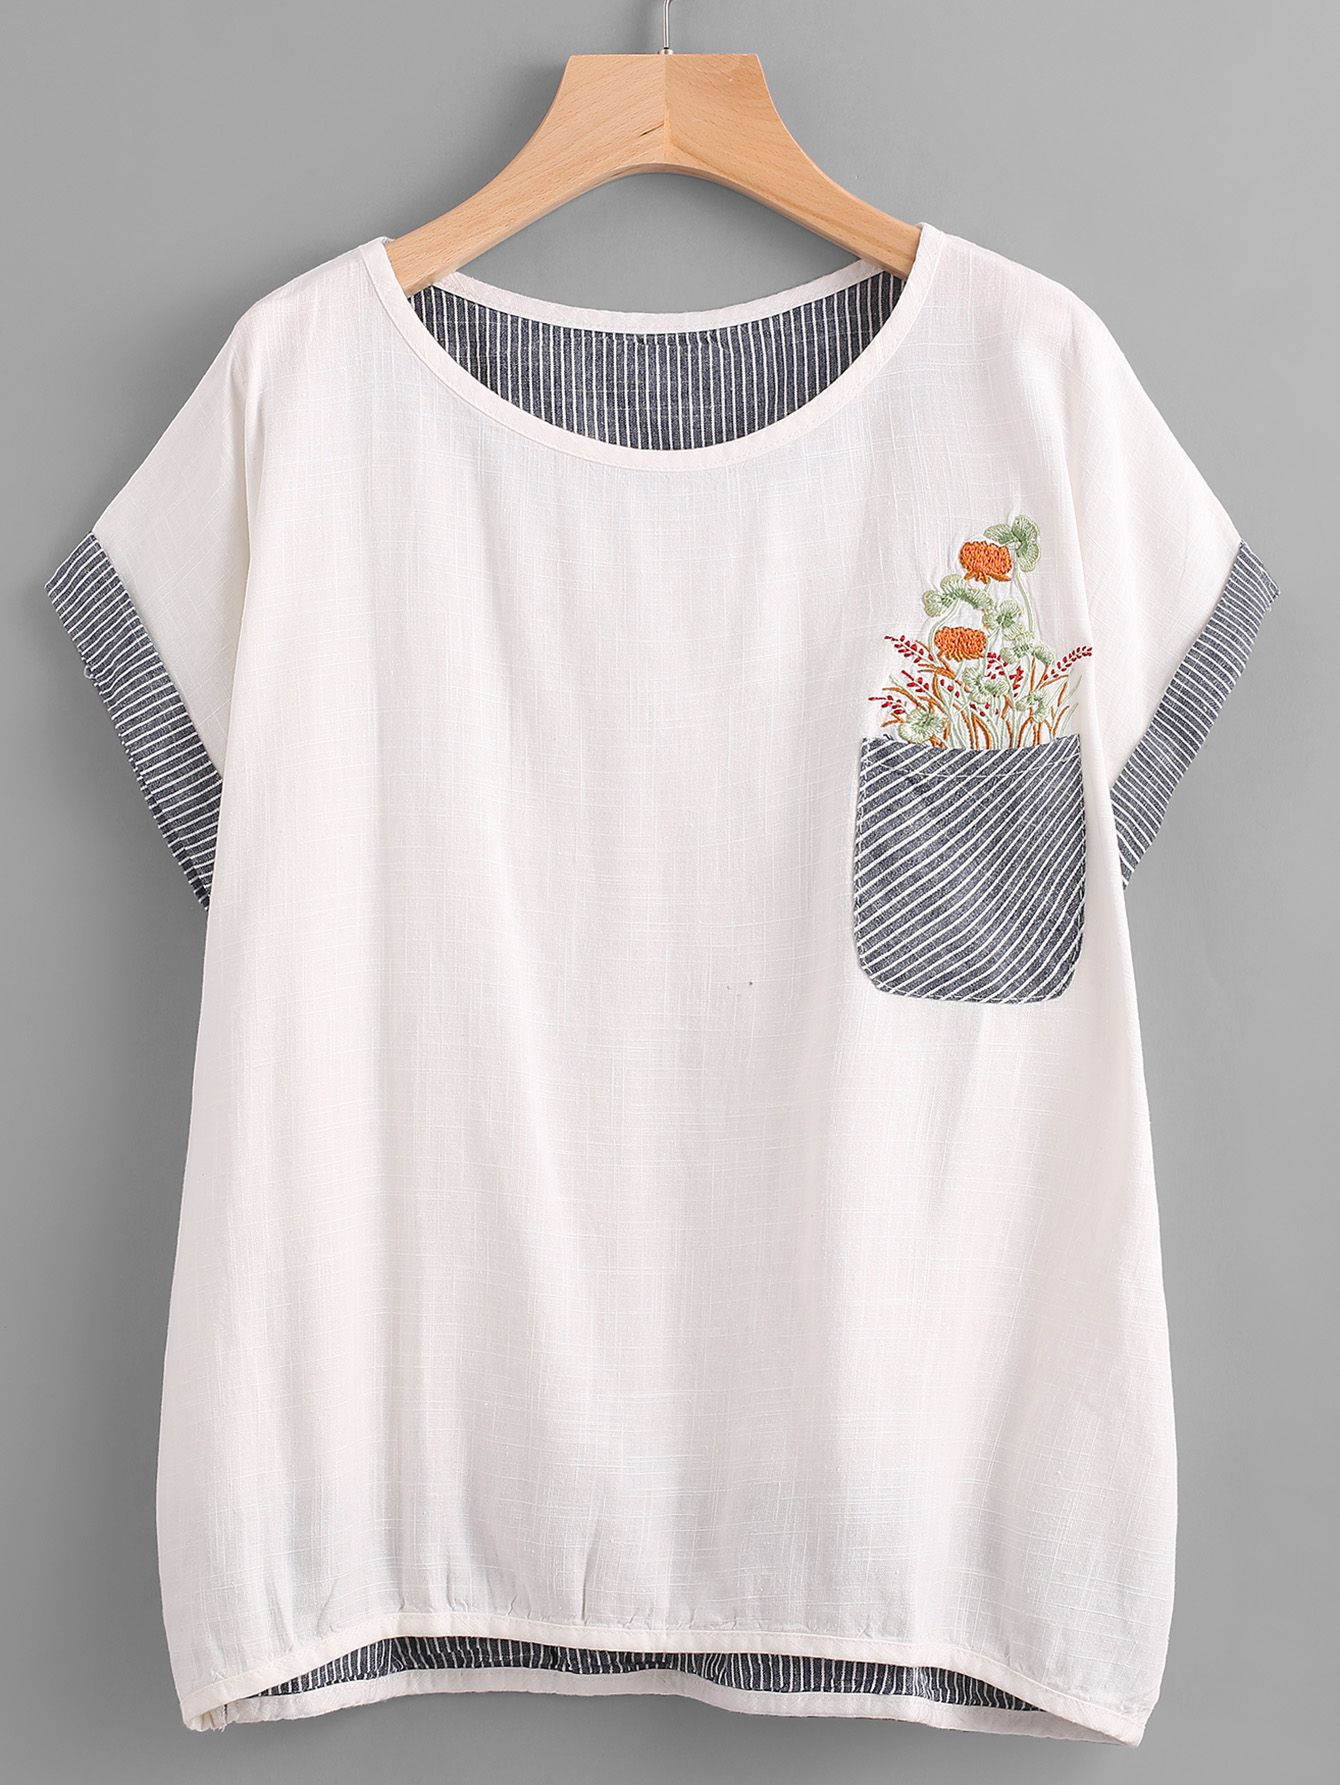 63034d8594 Shop Embroidered Contrast Striped Dip Hem Pocket Tee online. SheIn offers  Embroidered Contrast Striped Dip Hem Pocket Tee & more to fit your  fashionable ...